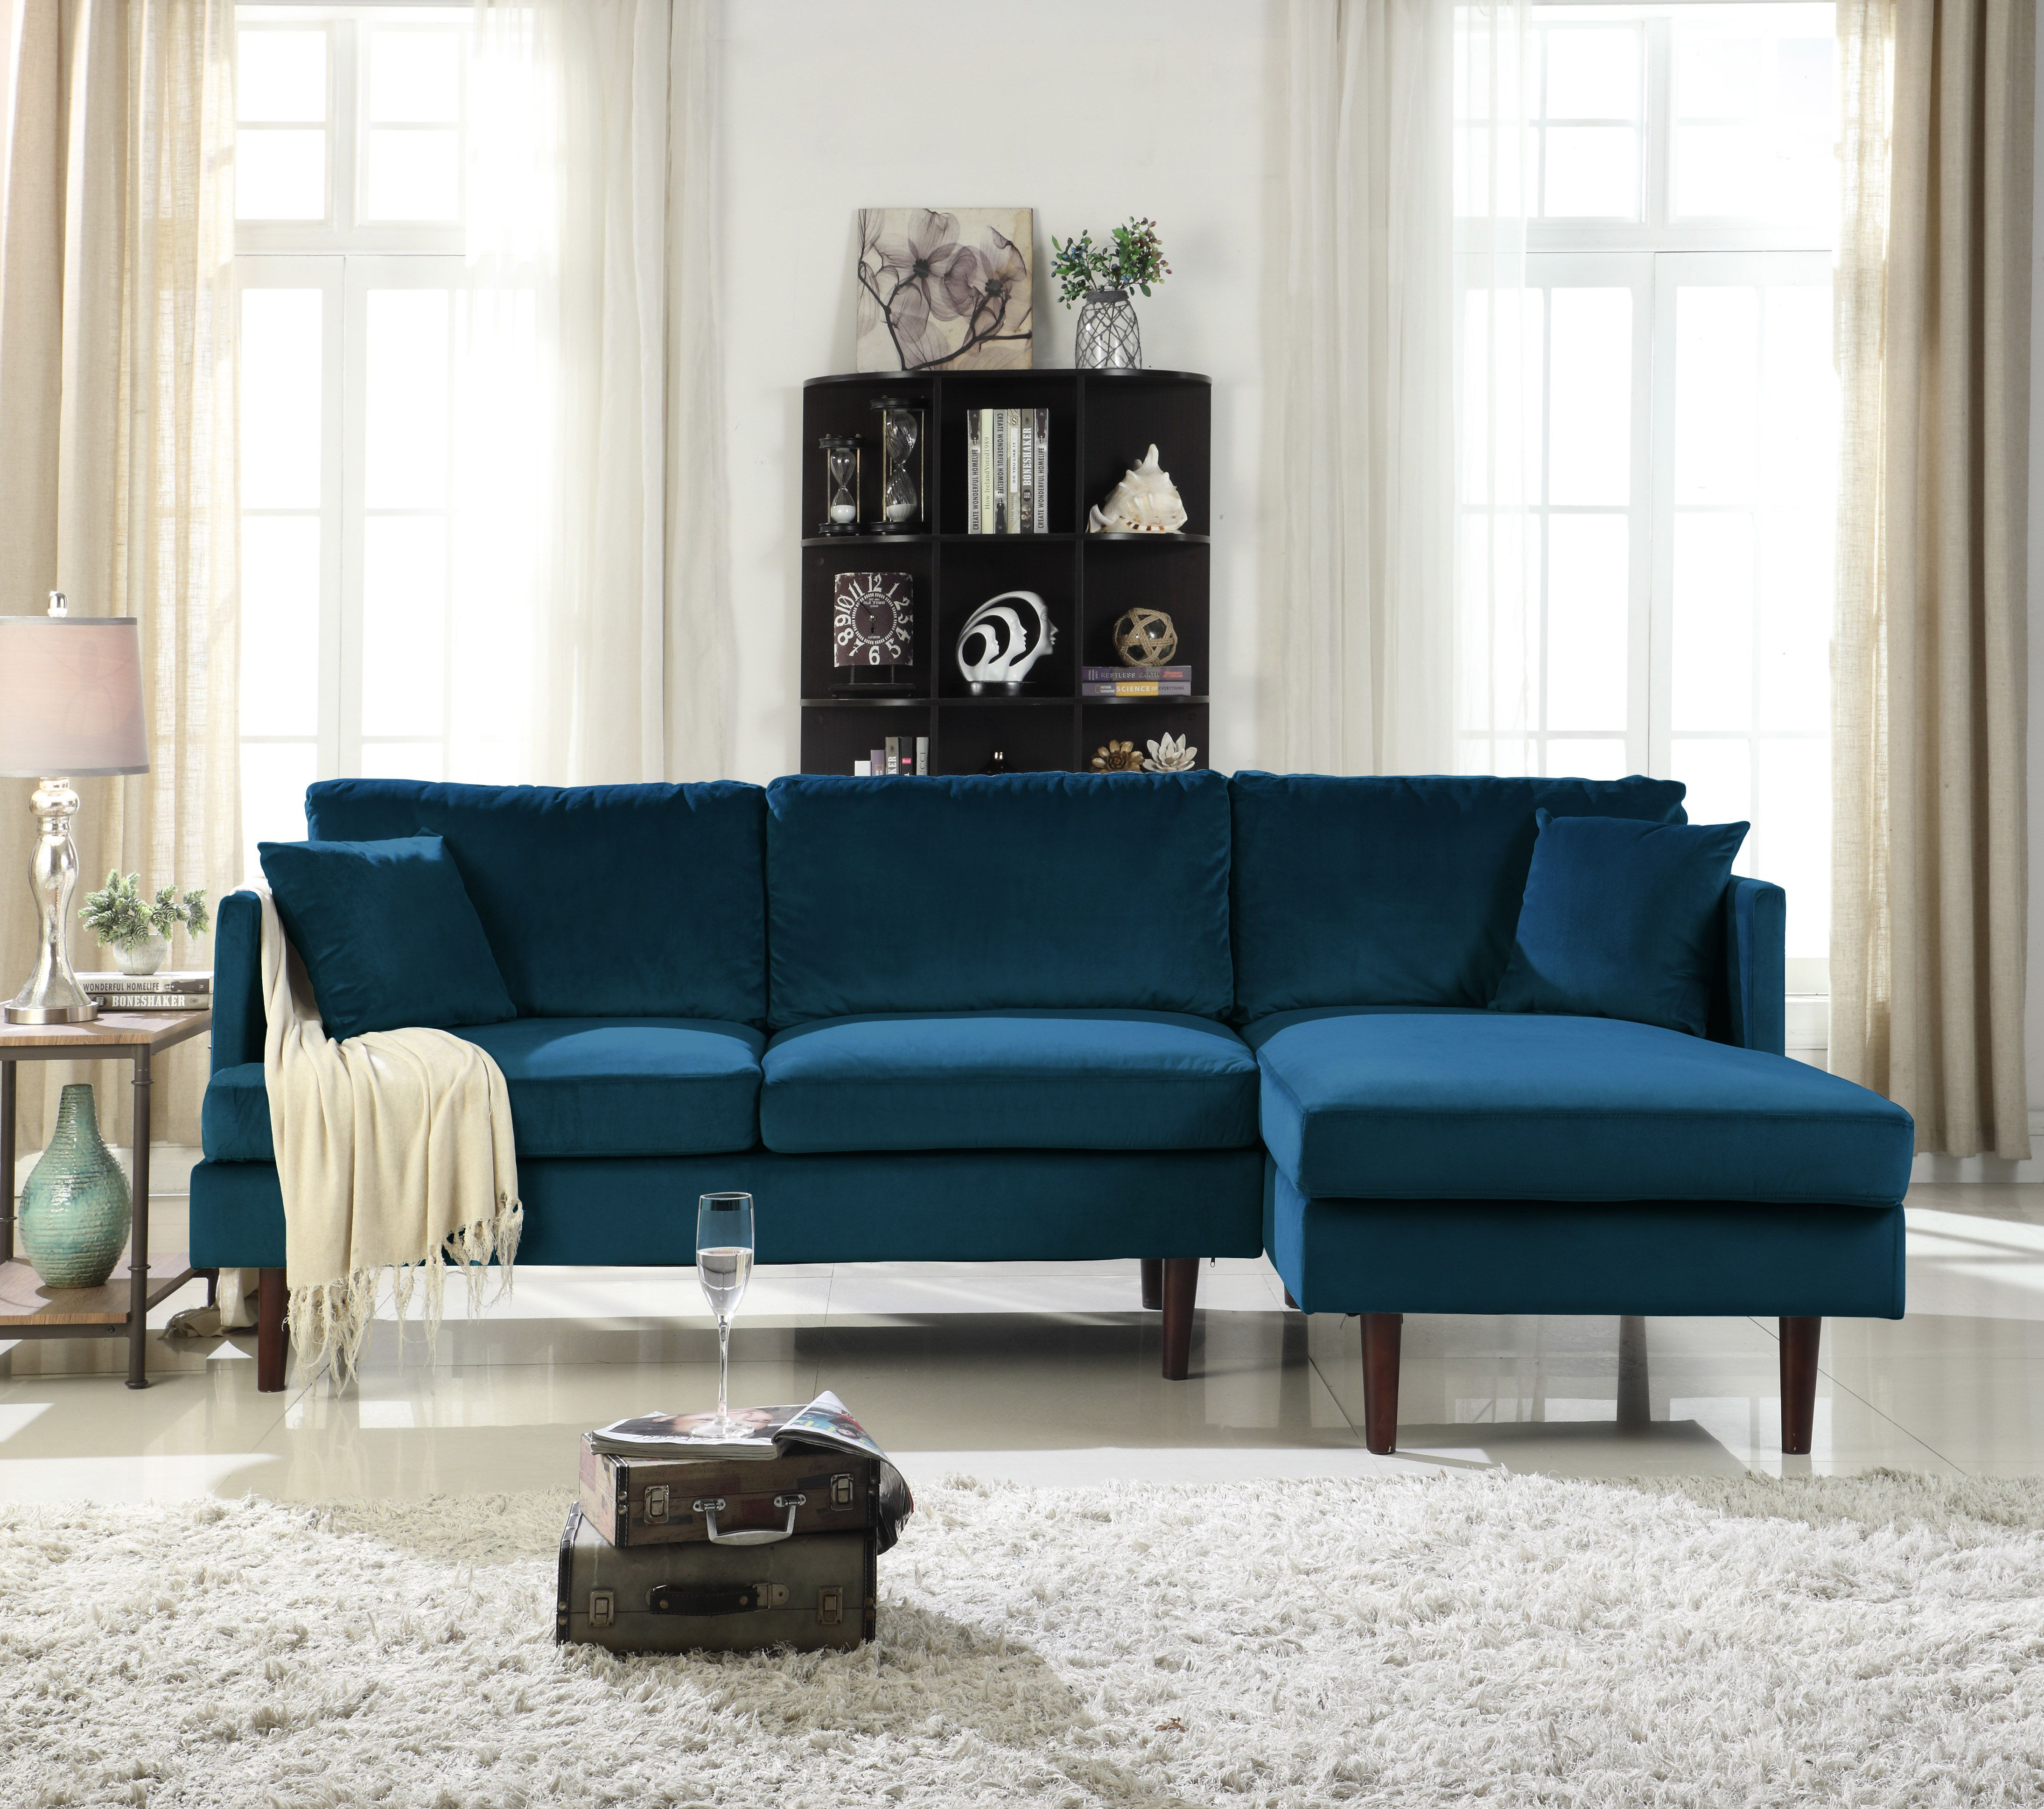 Mobilis Mid Century Modern Brush Microfiber L Shape Sofa With Extra Wide Chaise Lounge Dark Blue Walmart Com Blue Sofas Living Room Sectional Sofa With Chaise Microfiber Sectional Sofa